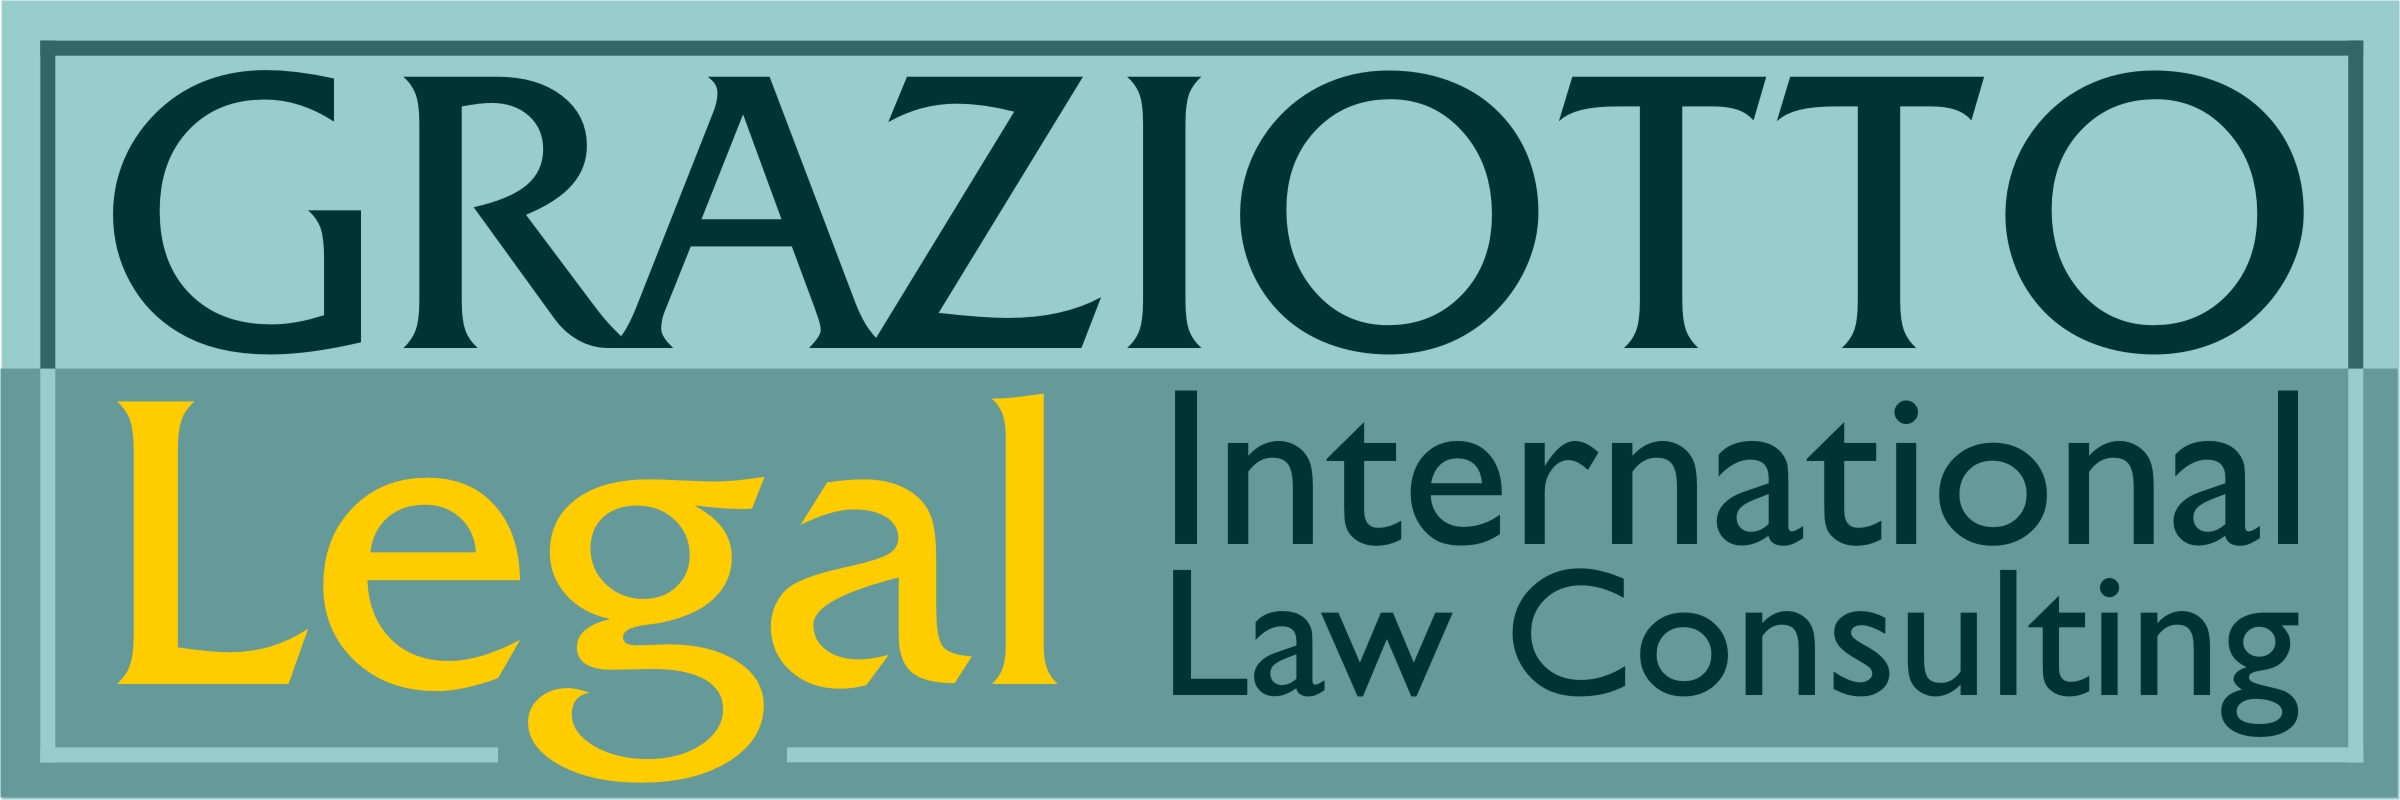 Graziotto Legal - International Law Firm logo